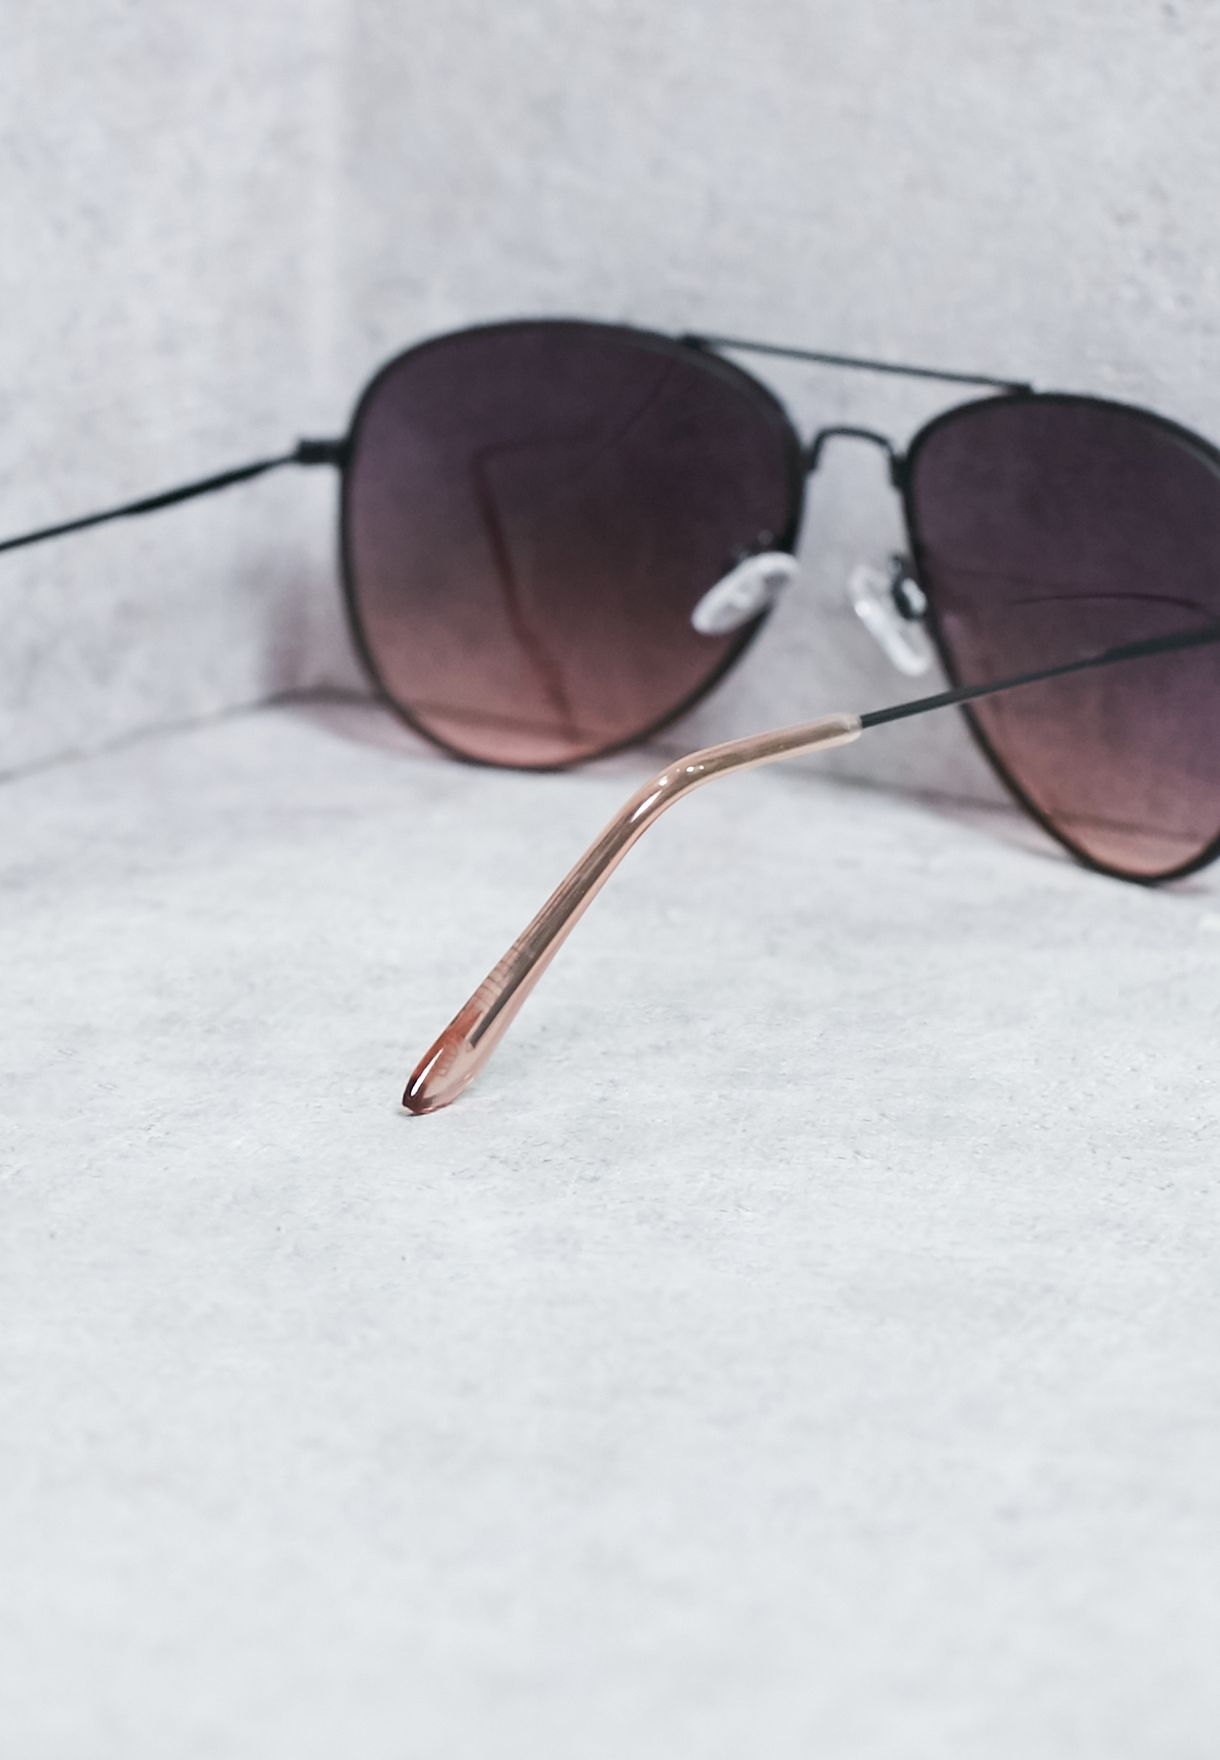 Trireria Sunglasses